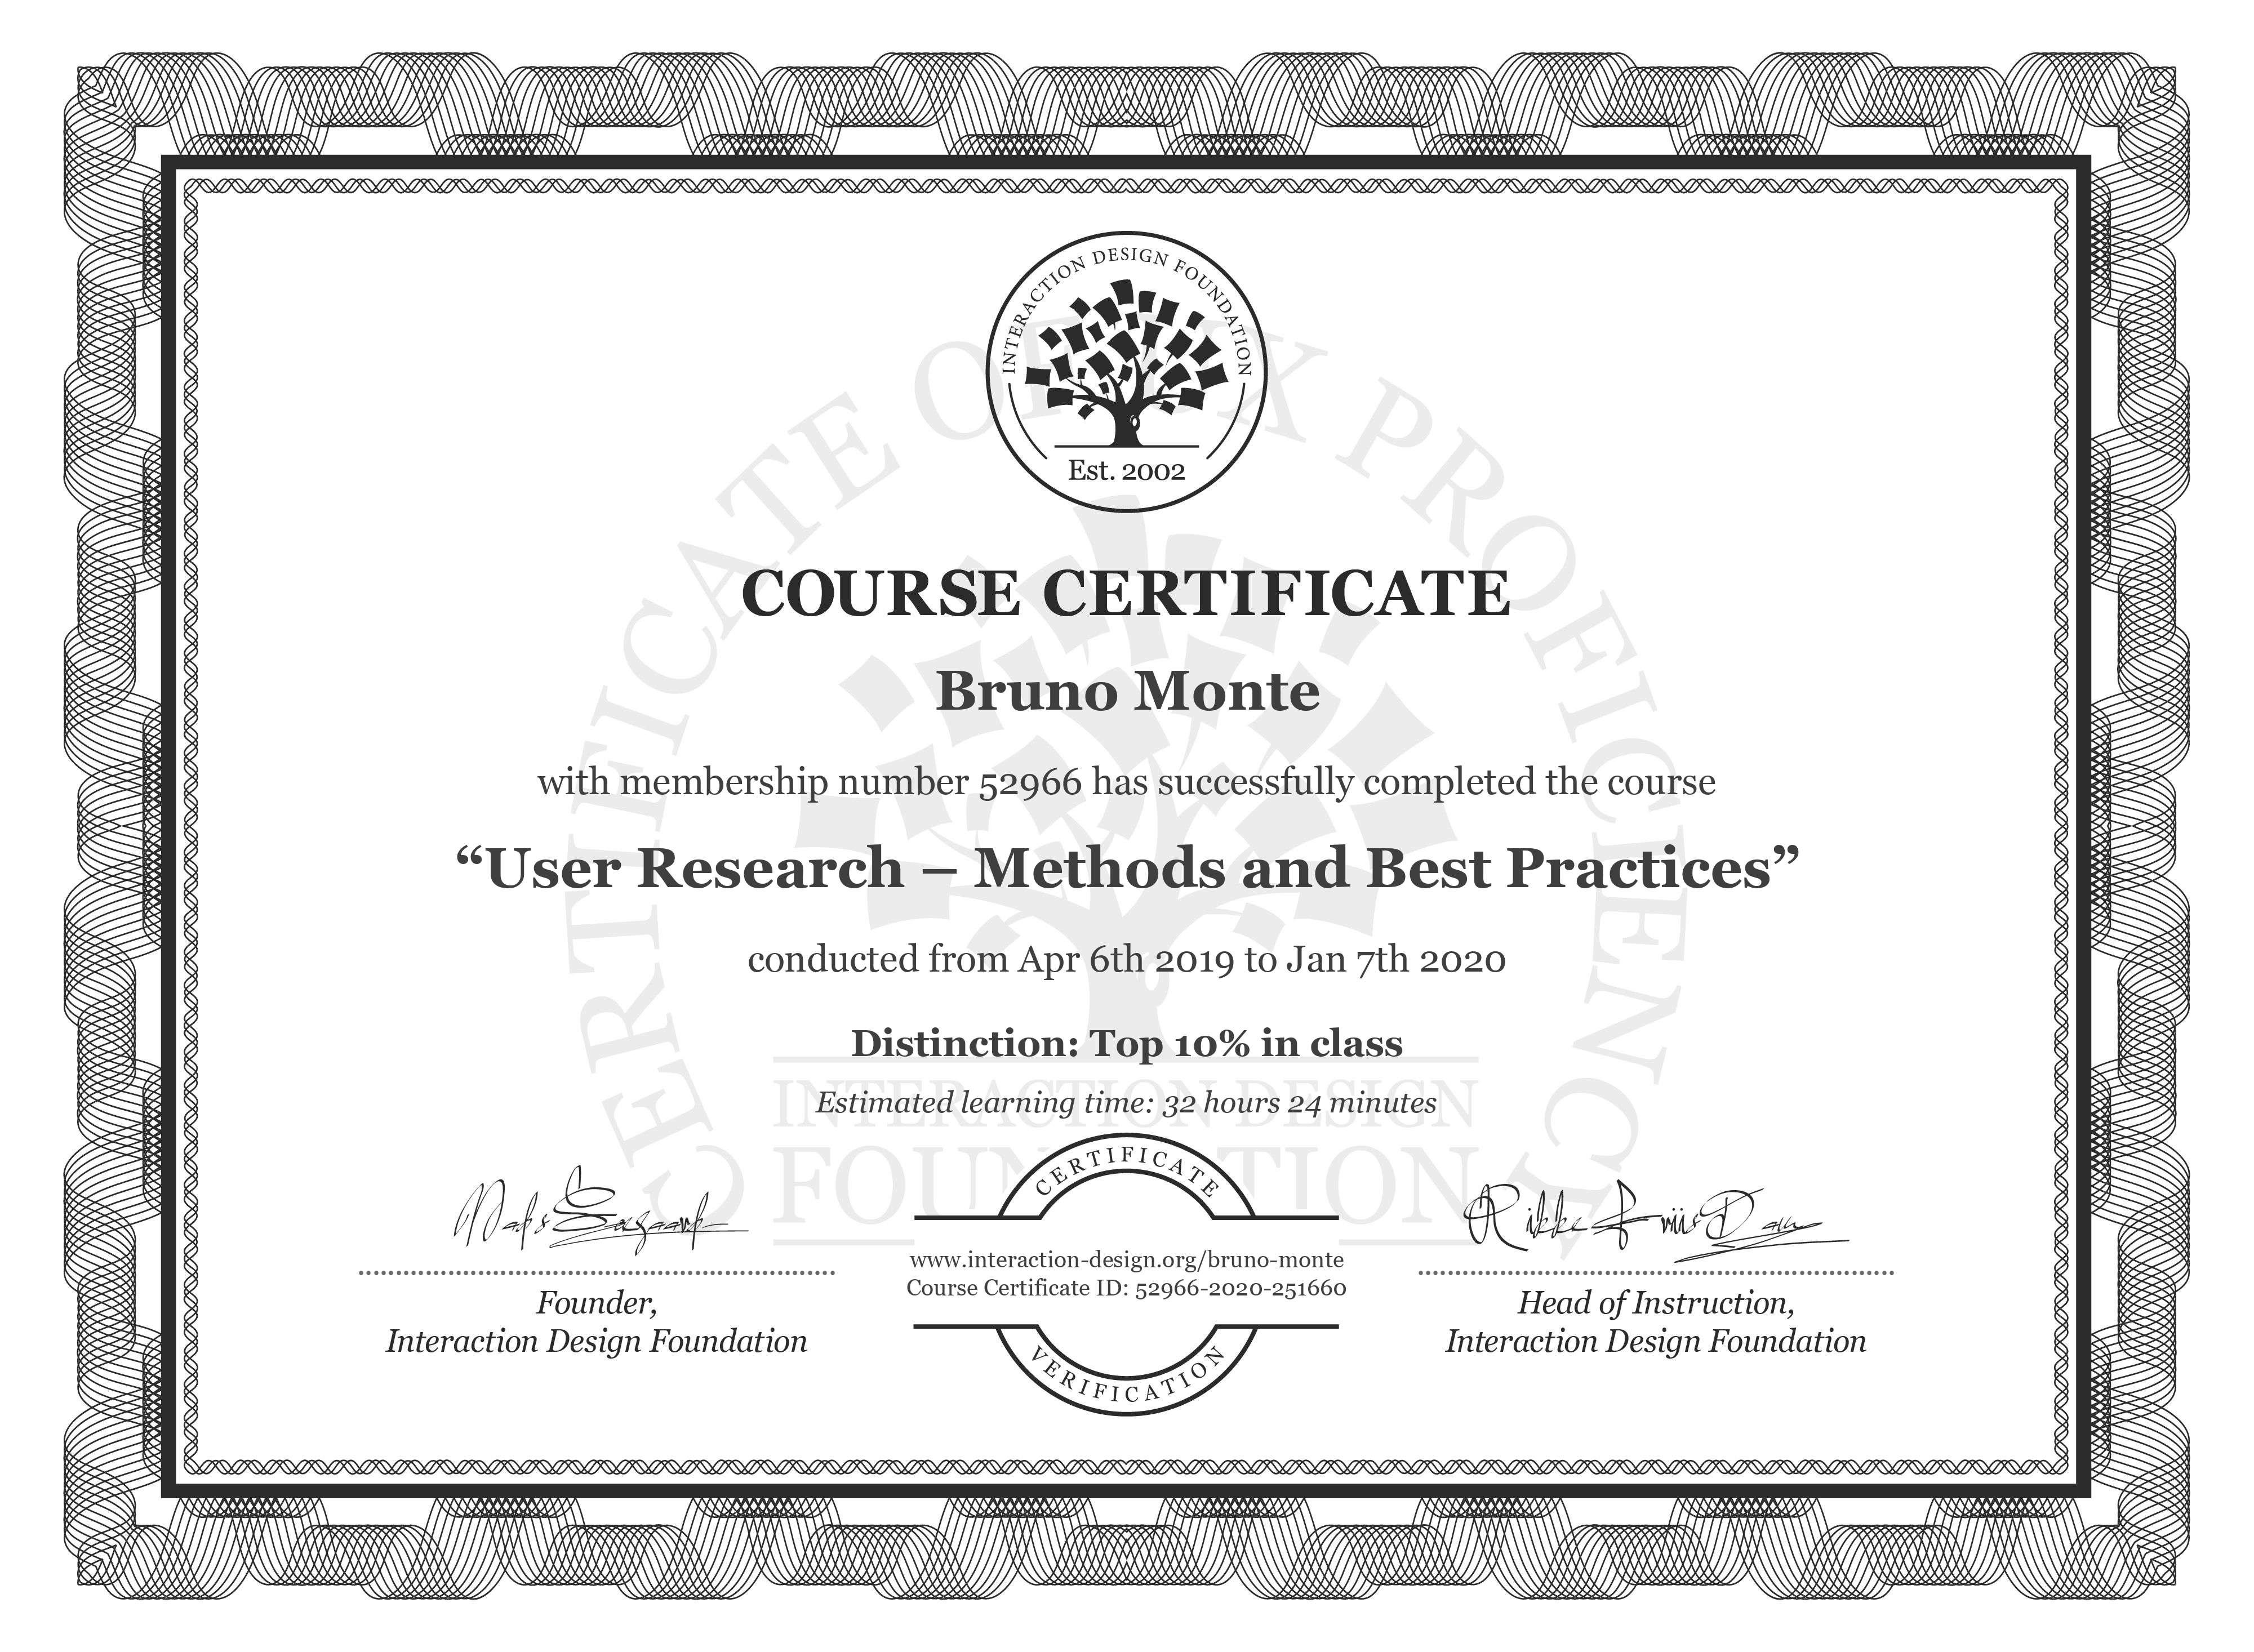 Bruno Monte's Course Certificate: User Research – Methods and Best Practices